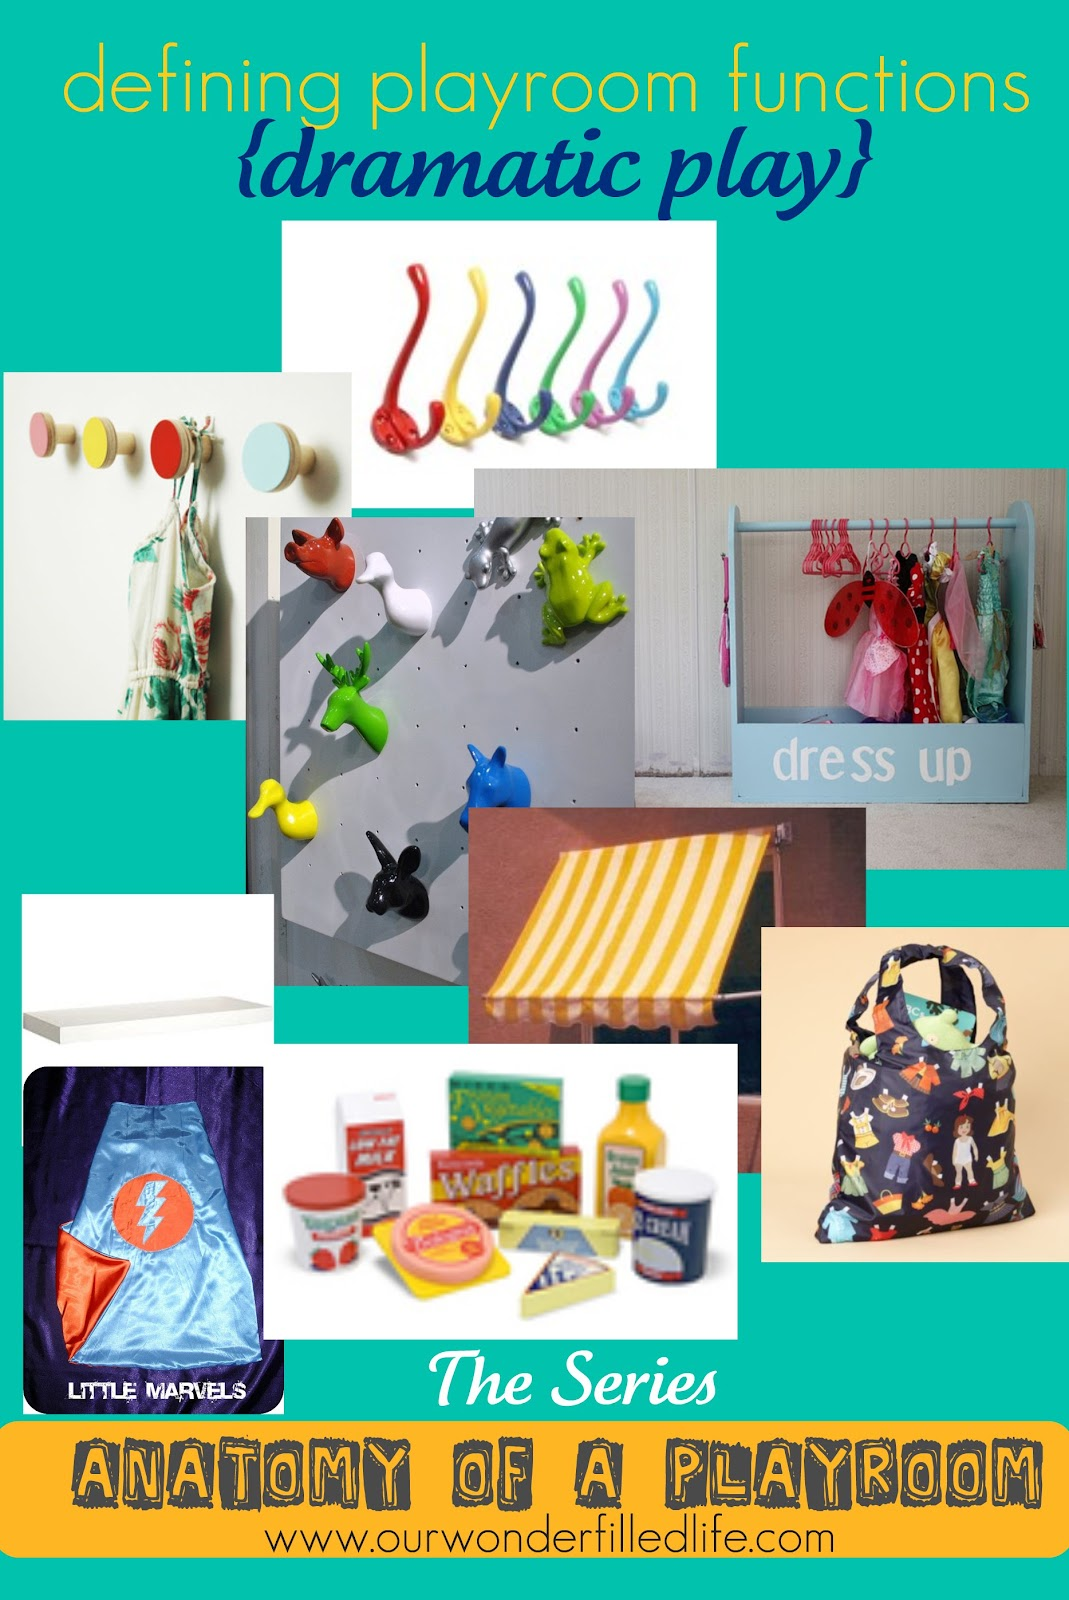 Our Wonderfilled Life Anatomy Of A Playroom 1 The